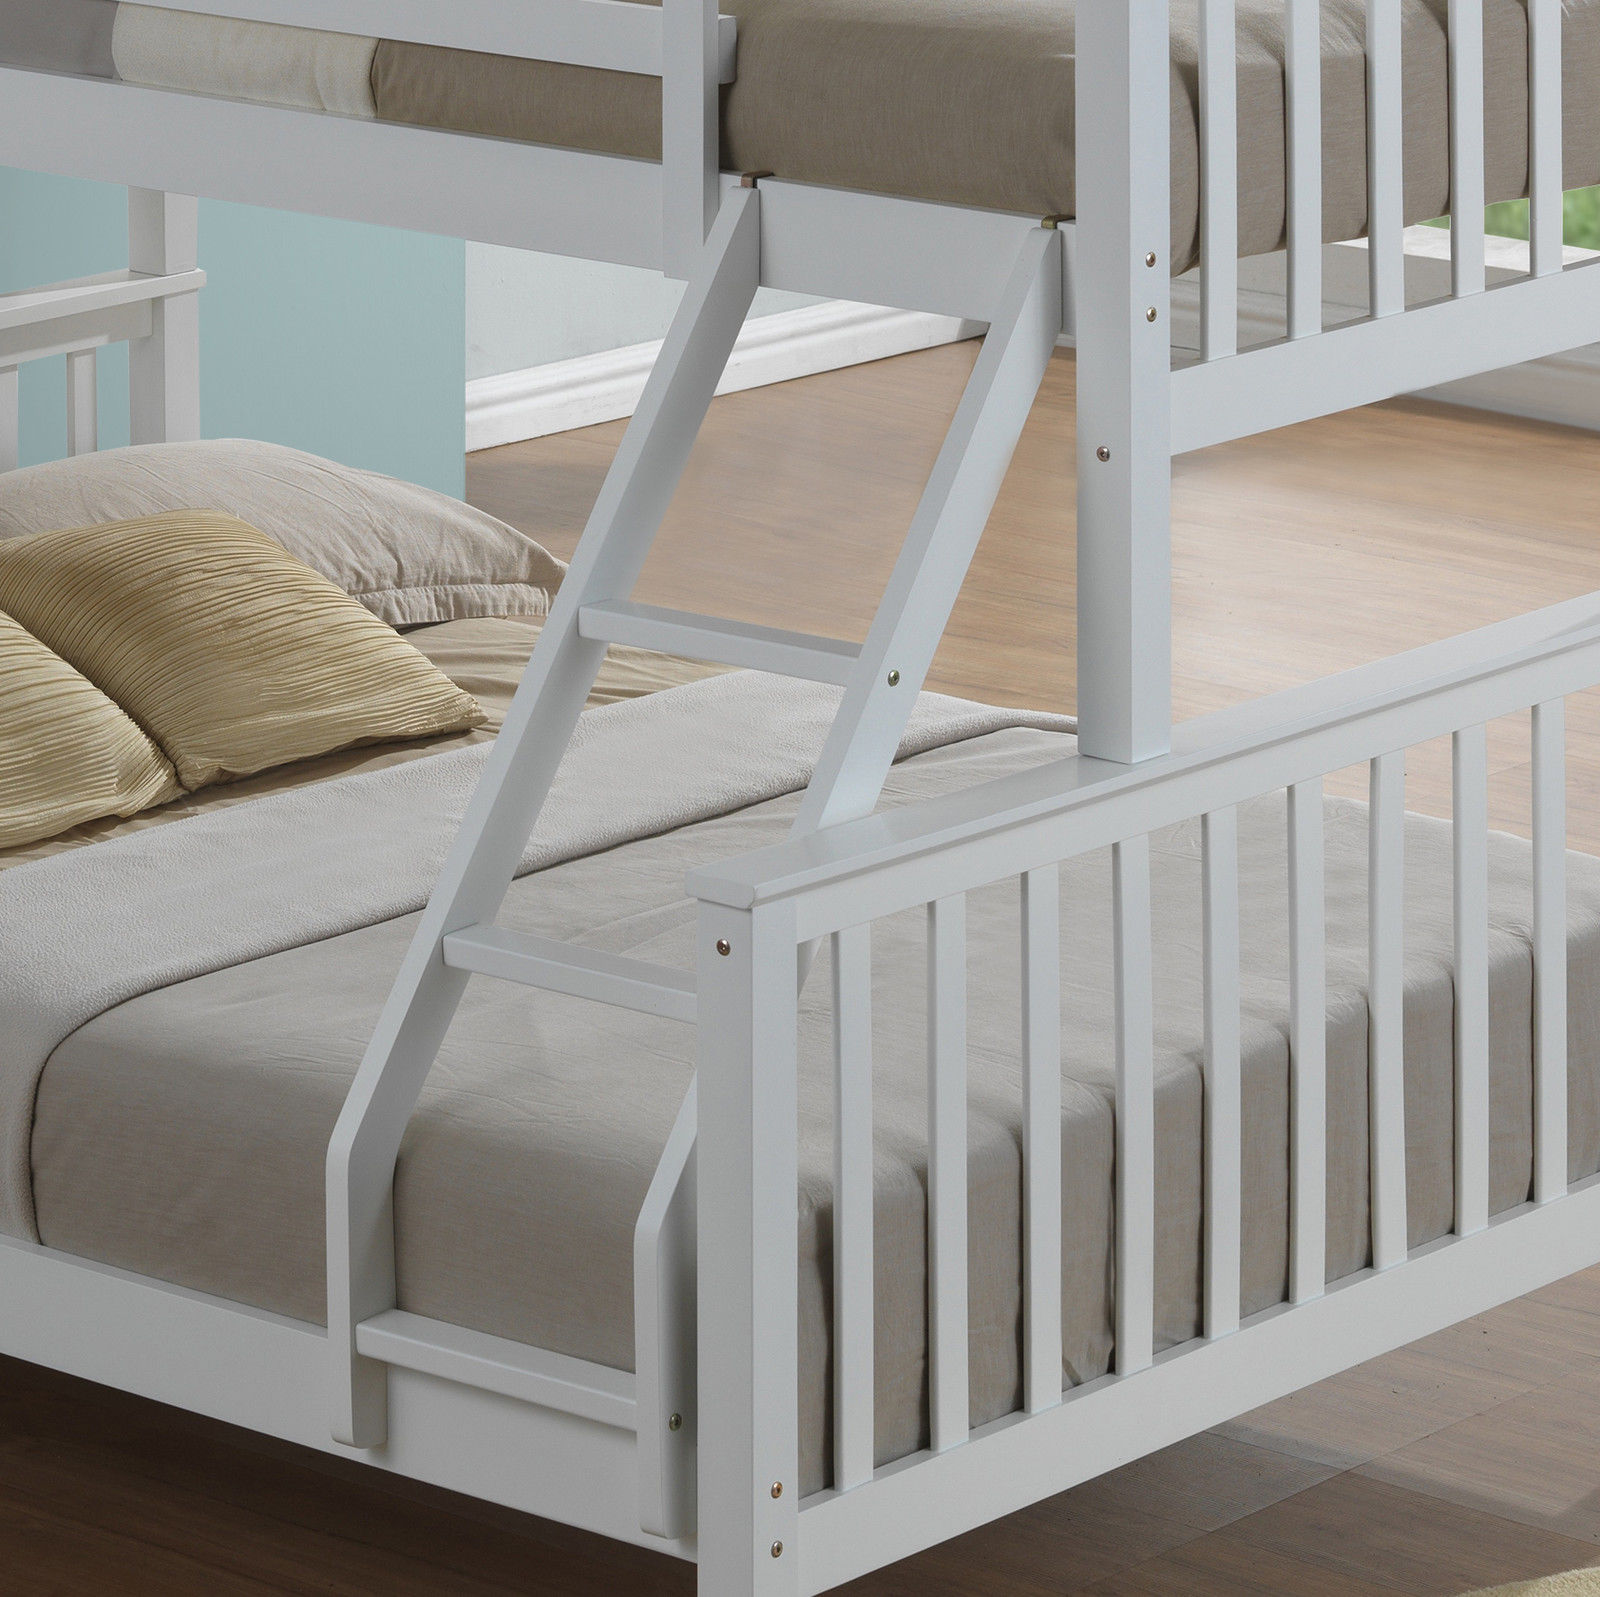 Modern 3 Sleeper White Childrens Bunk Bed – Inc Drawers